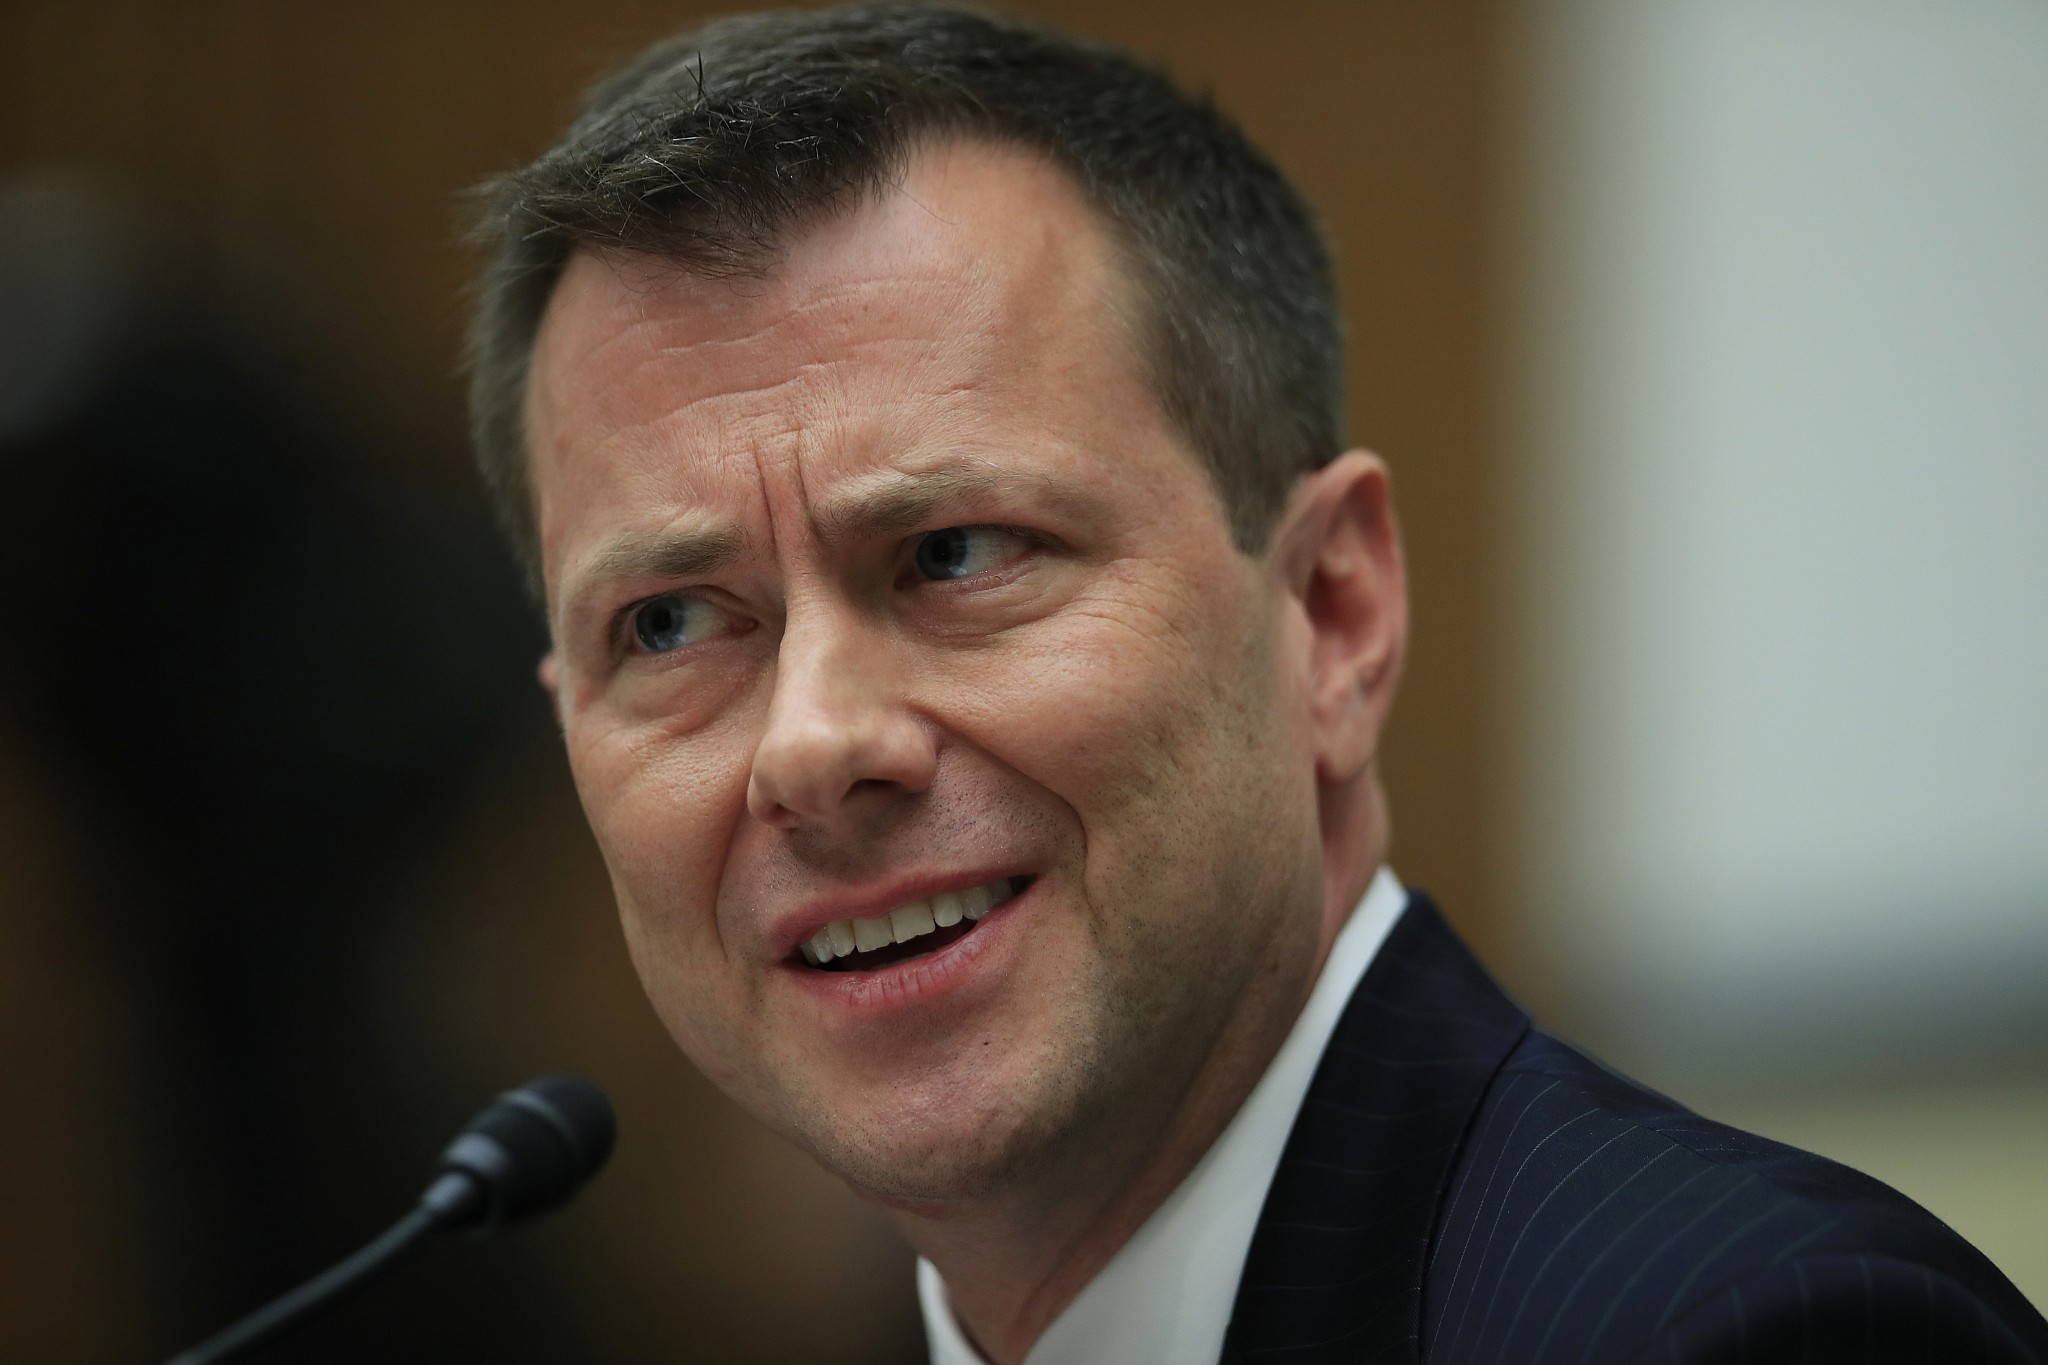 Federal Bureau of Investigation fires agent Peter Strzok who criticized Trump in text messages